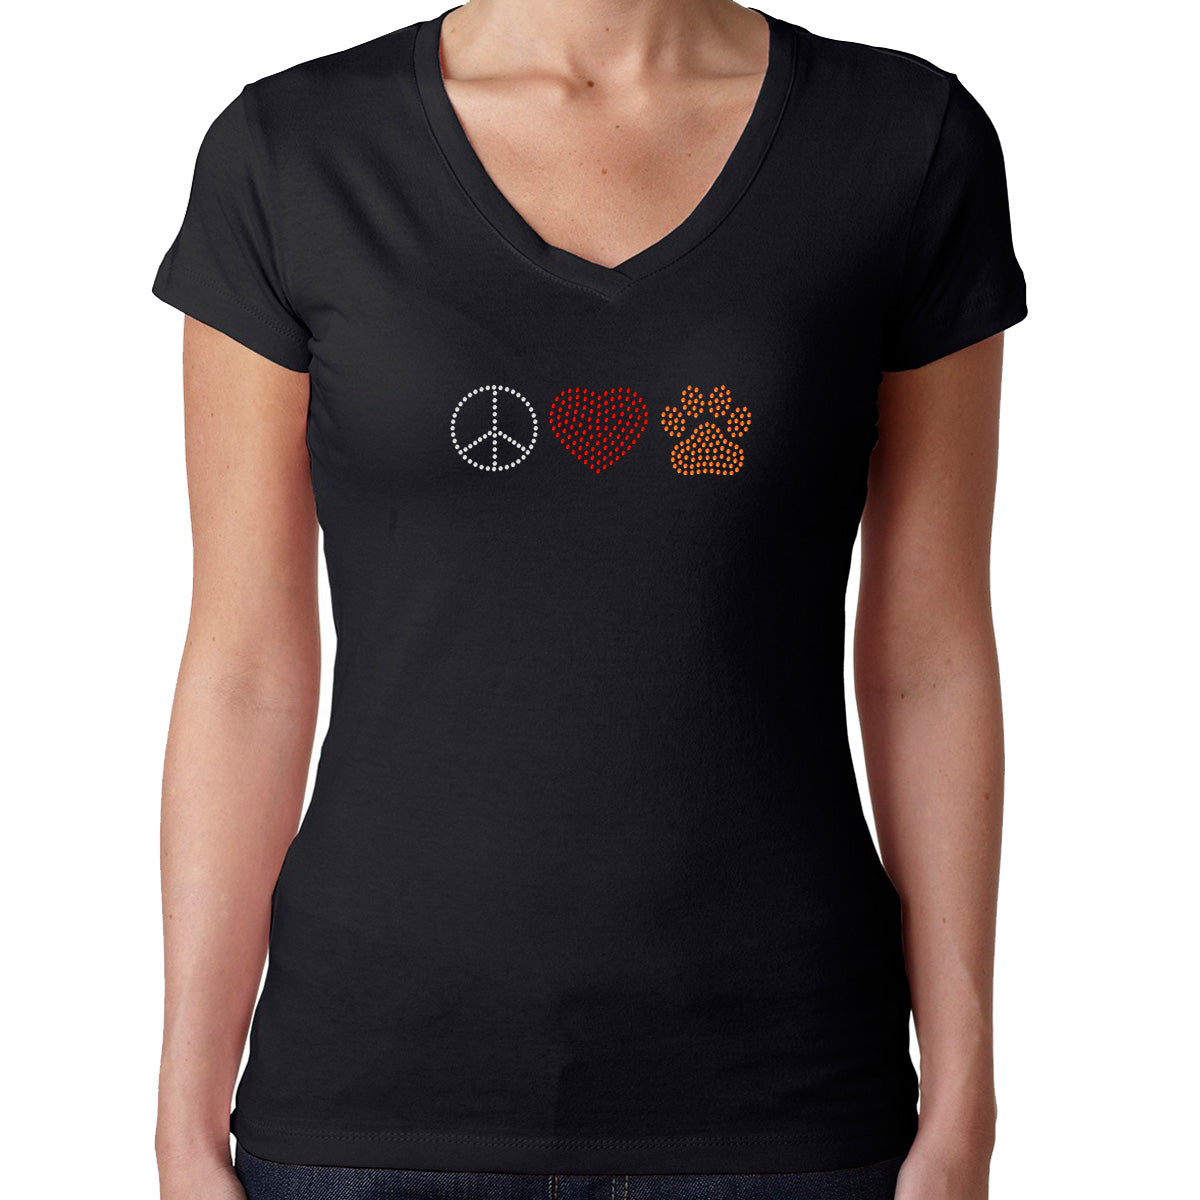 Womens T-Shirt Rhinestone Bling Black Fitted Tee Peace Sign Love Heart Dog Paw